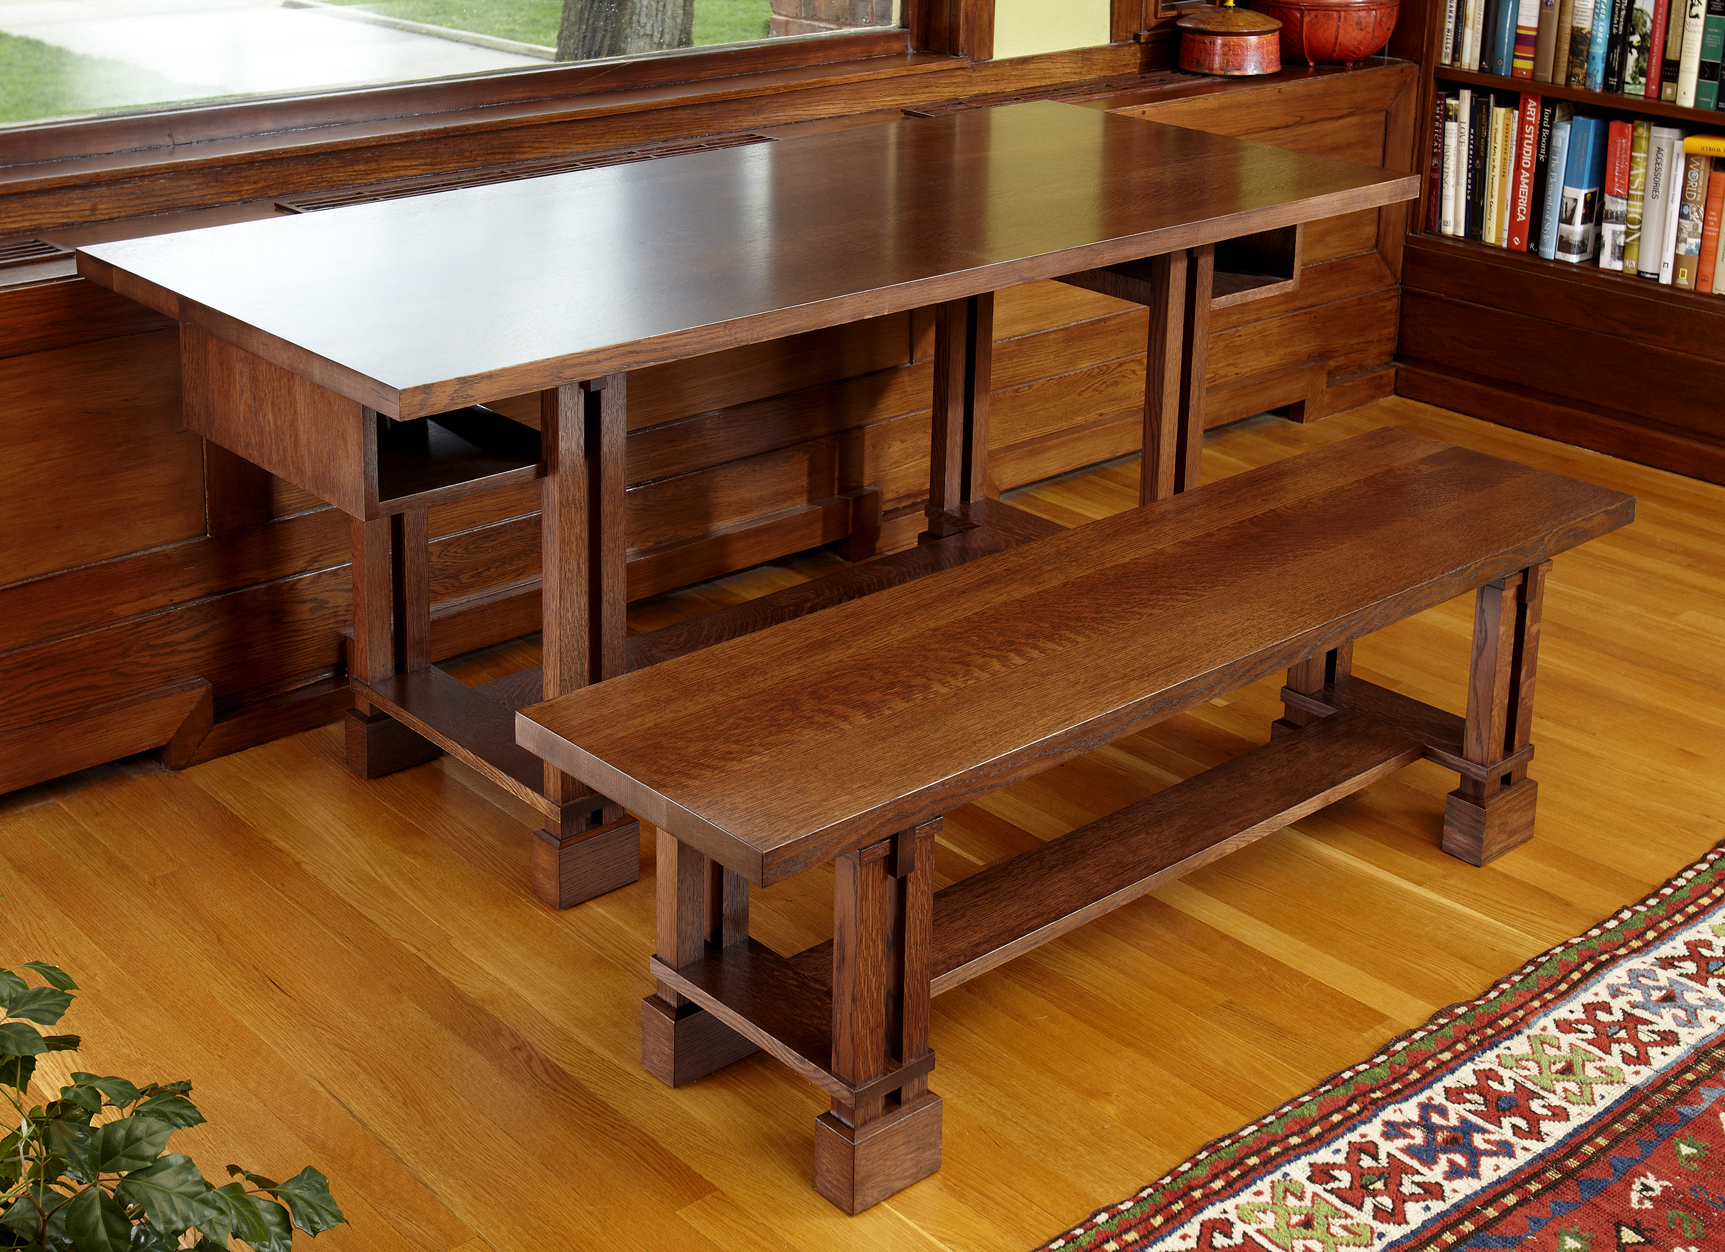 Prairie Style Table and Bench